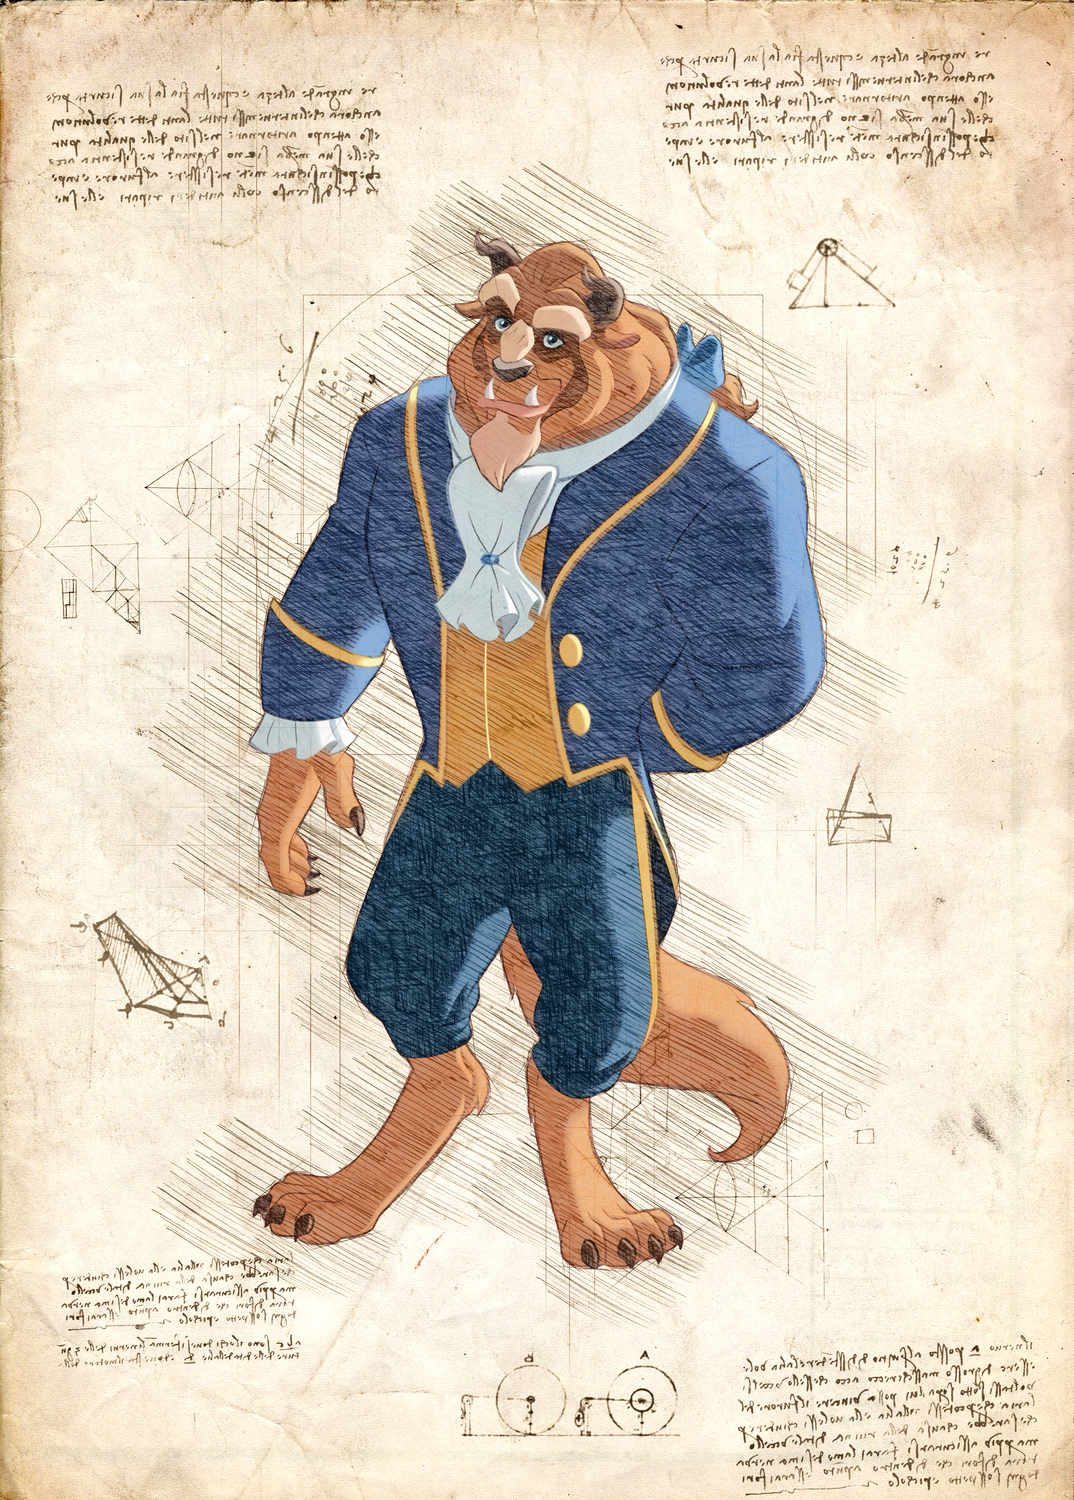 Pergament - Disney - Beauty and the beast